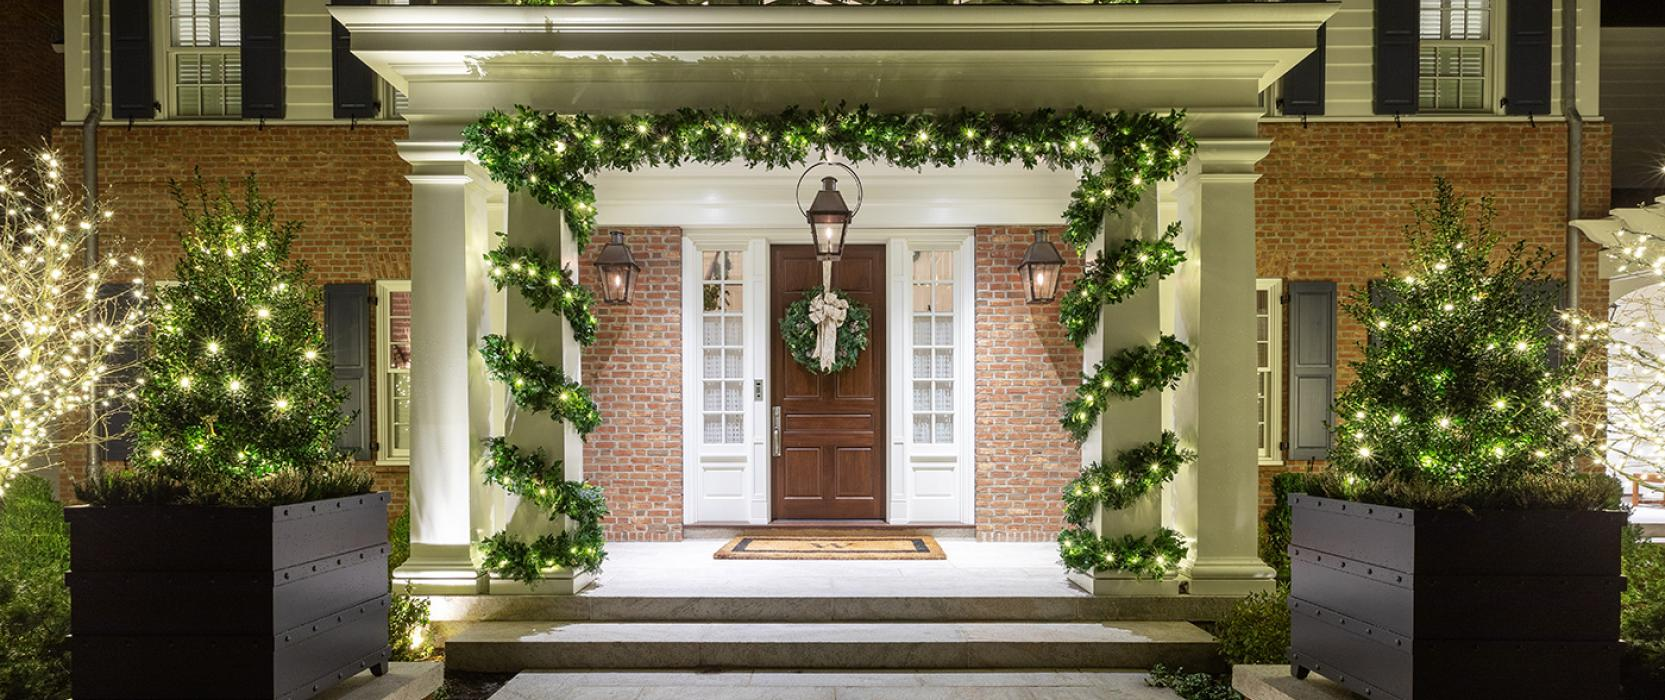 New England home dressed for the holidays by The Schumacher Companies